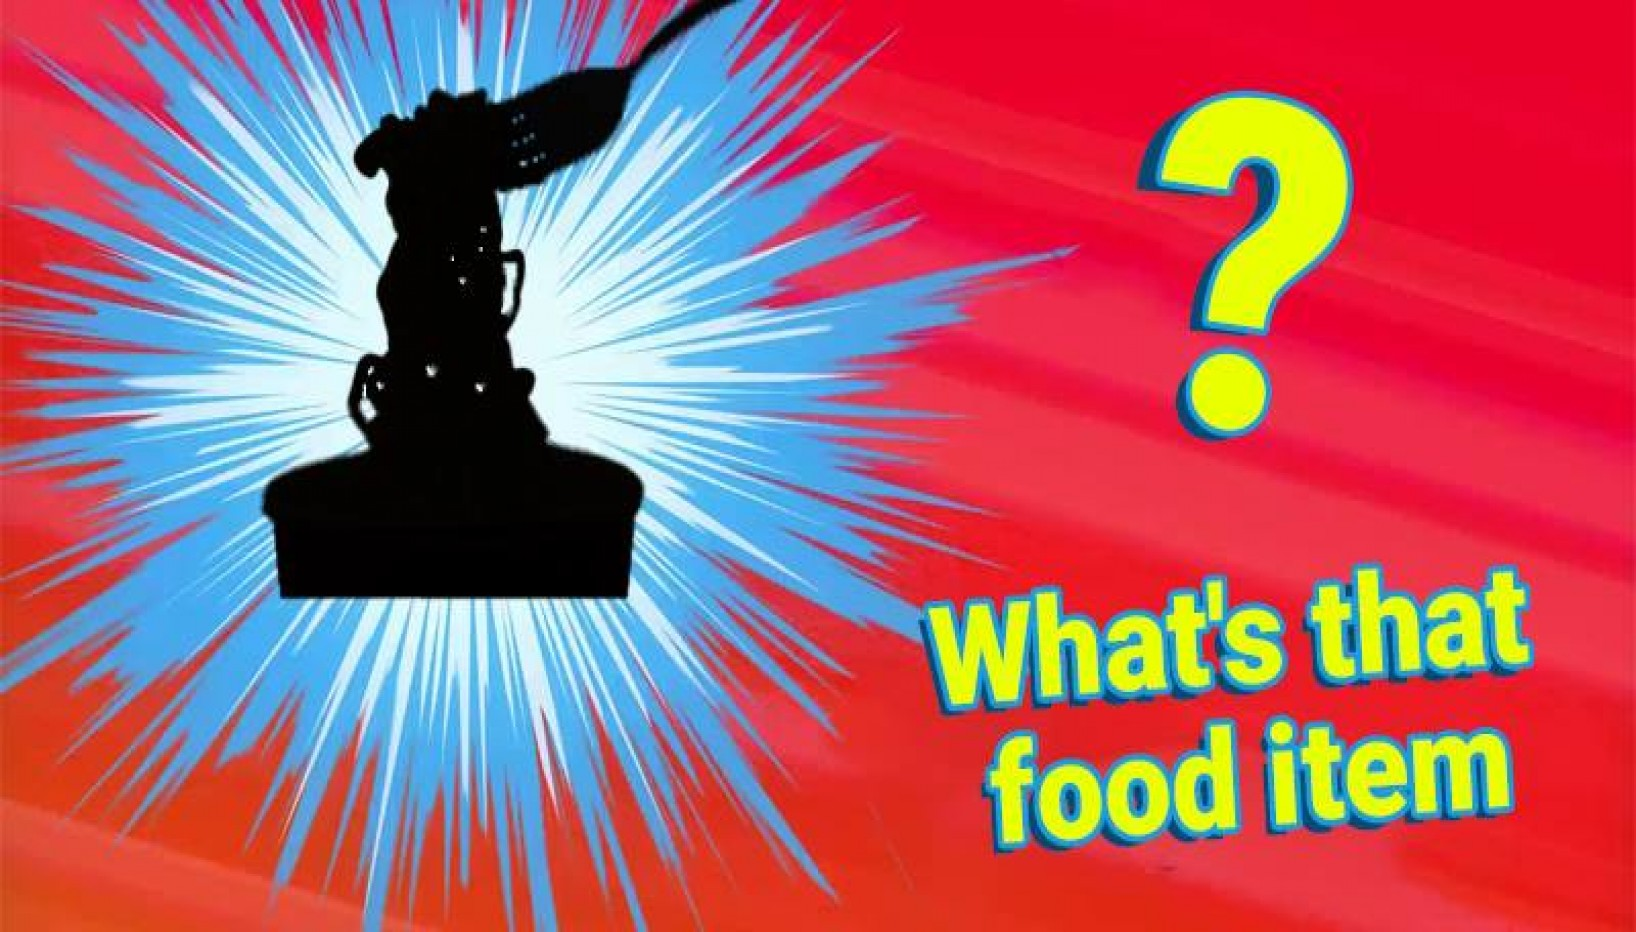 Can You Correctly Name These Childhood Favorite Junk Foods From Just Blurred Images?